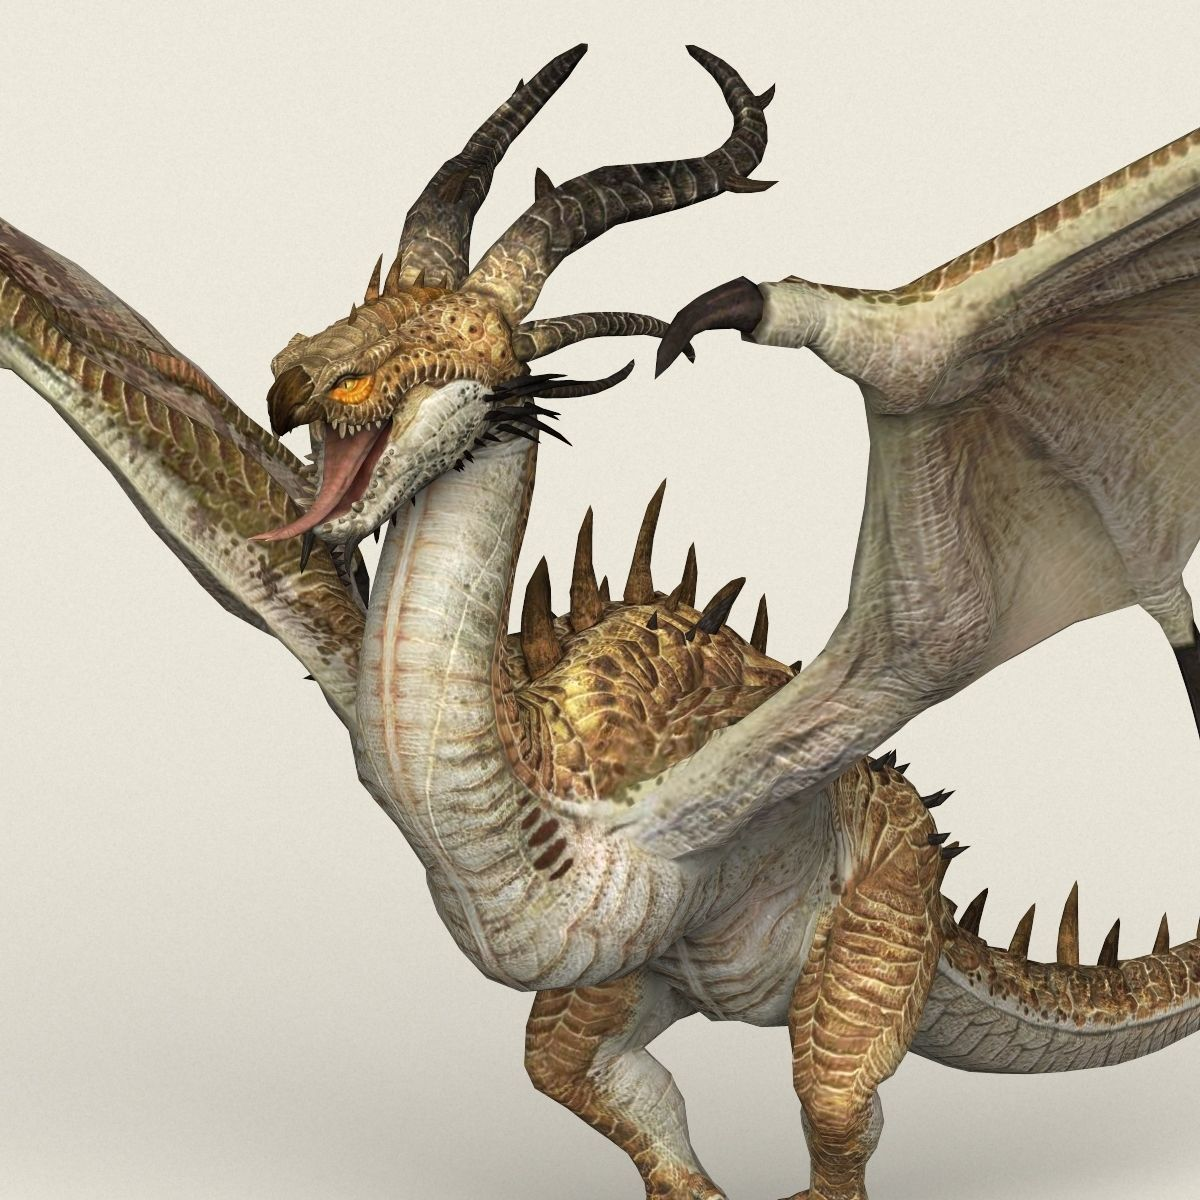 Game Ready Warrior Dragon by monstergallery. Here is game